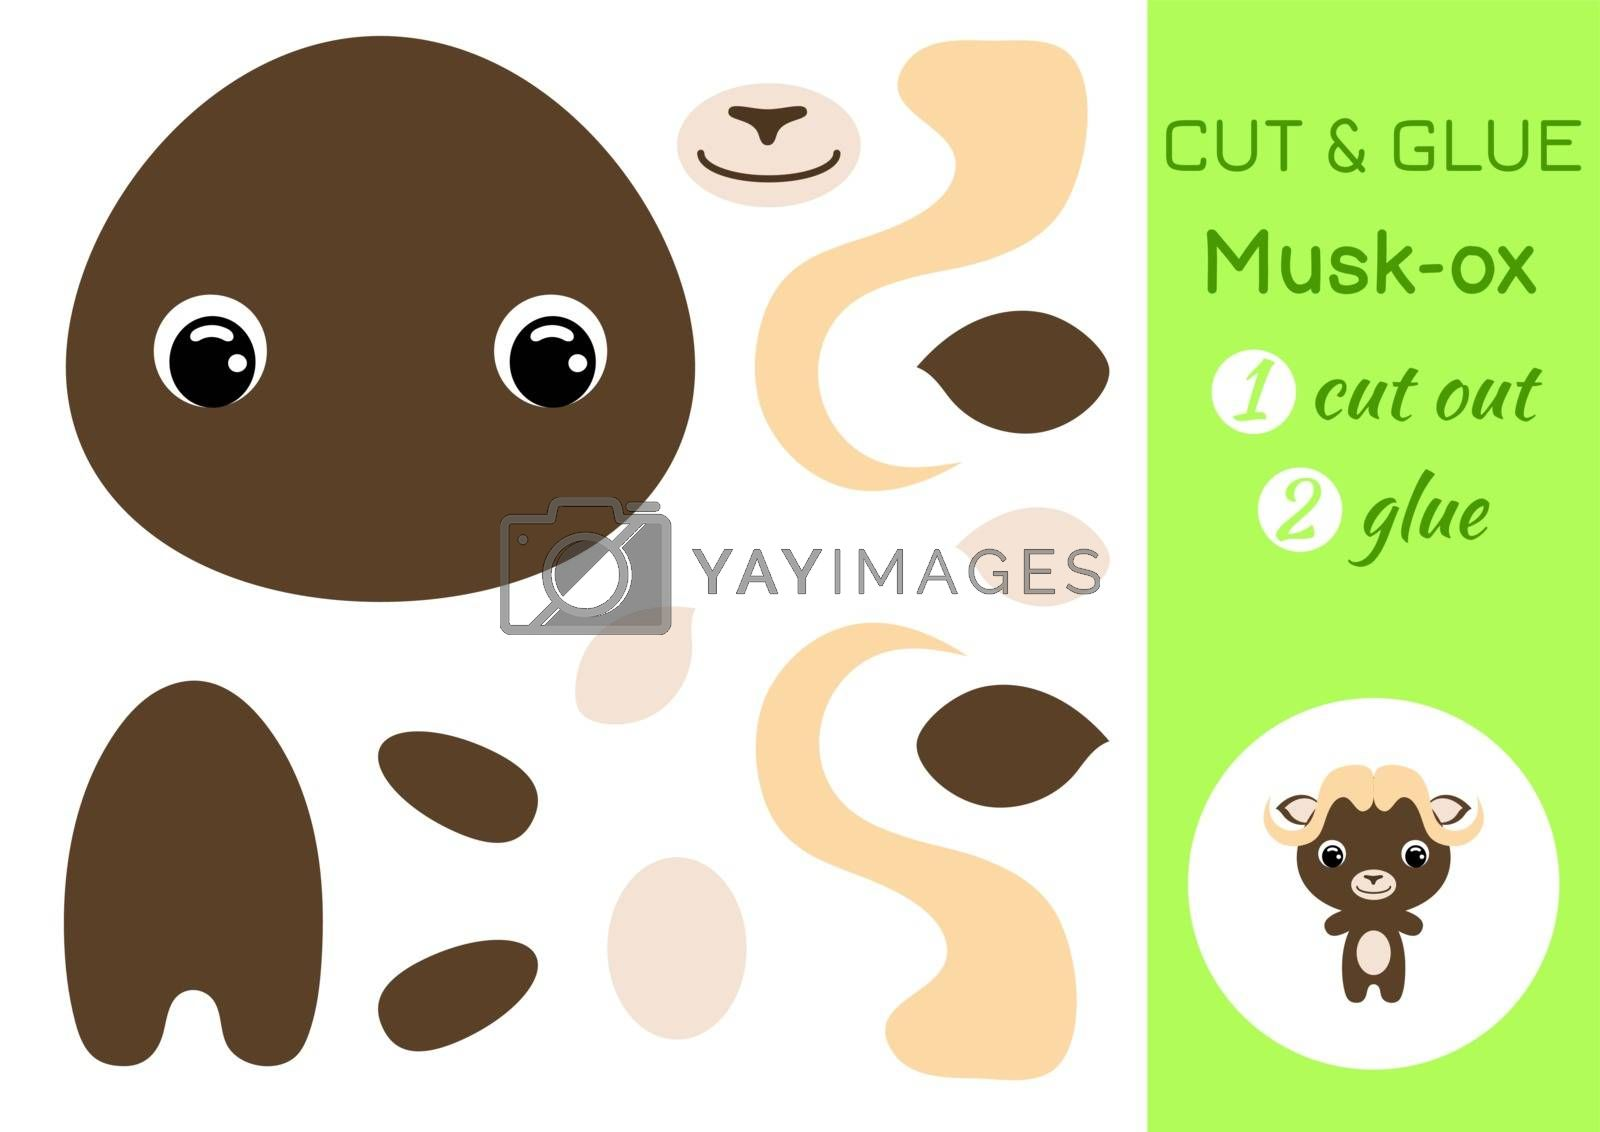 Cut and glue baby musk-ox. Education developing worksheet. Color paper game for preschool children. Cut parts of image and glue on paper. Cartoon character. Colorful vector stock illustration.